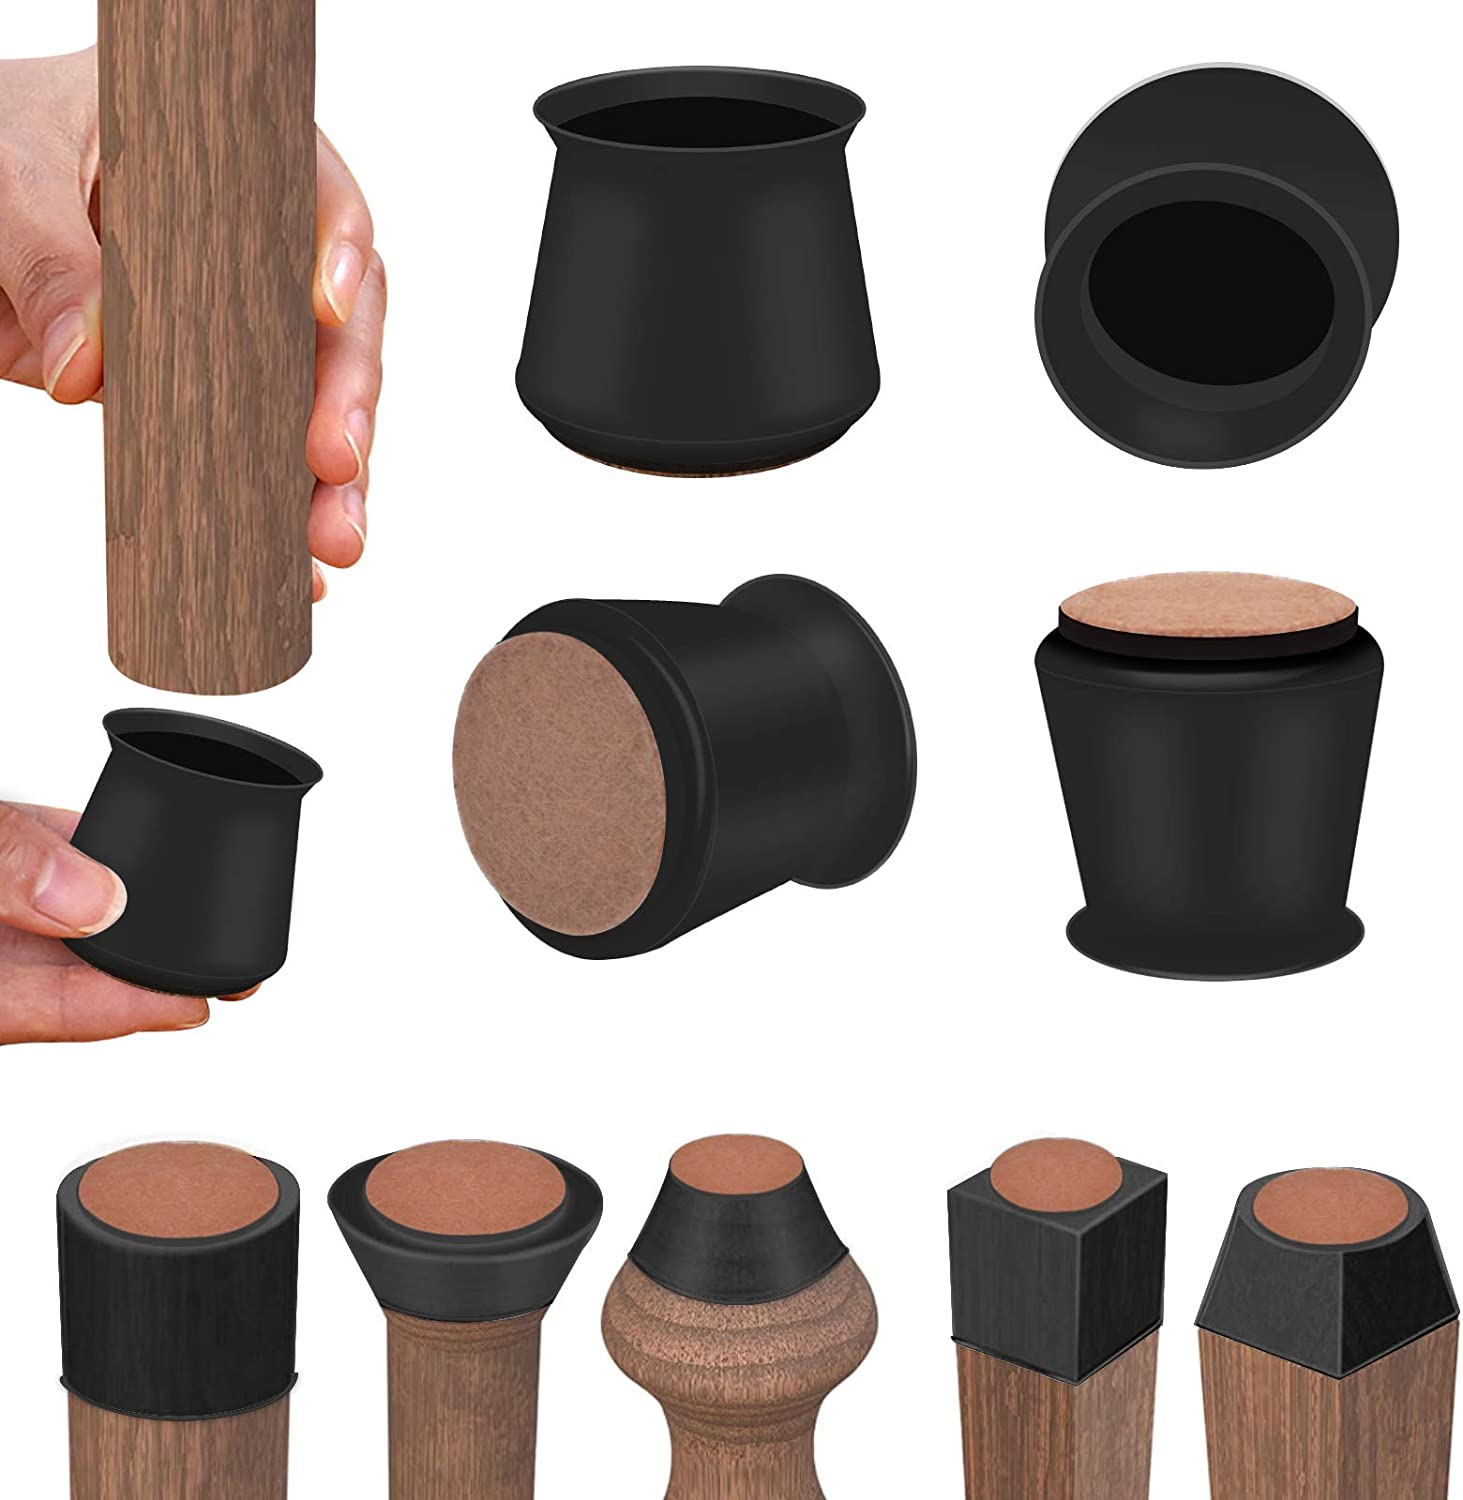 Chair Leg Protectors for Hardwood Floors 1 inch Black, Round&Square Silicone Chair Leg Covers for Mute Furniture Moving|Elastic Furniture Silicone Protection Cover Black 16pcs